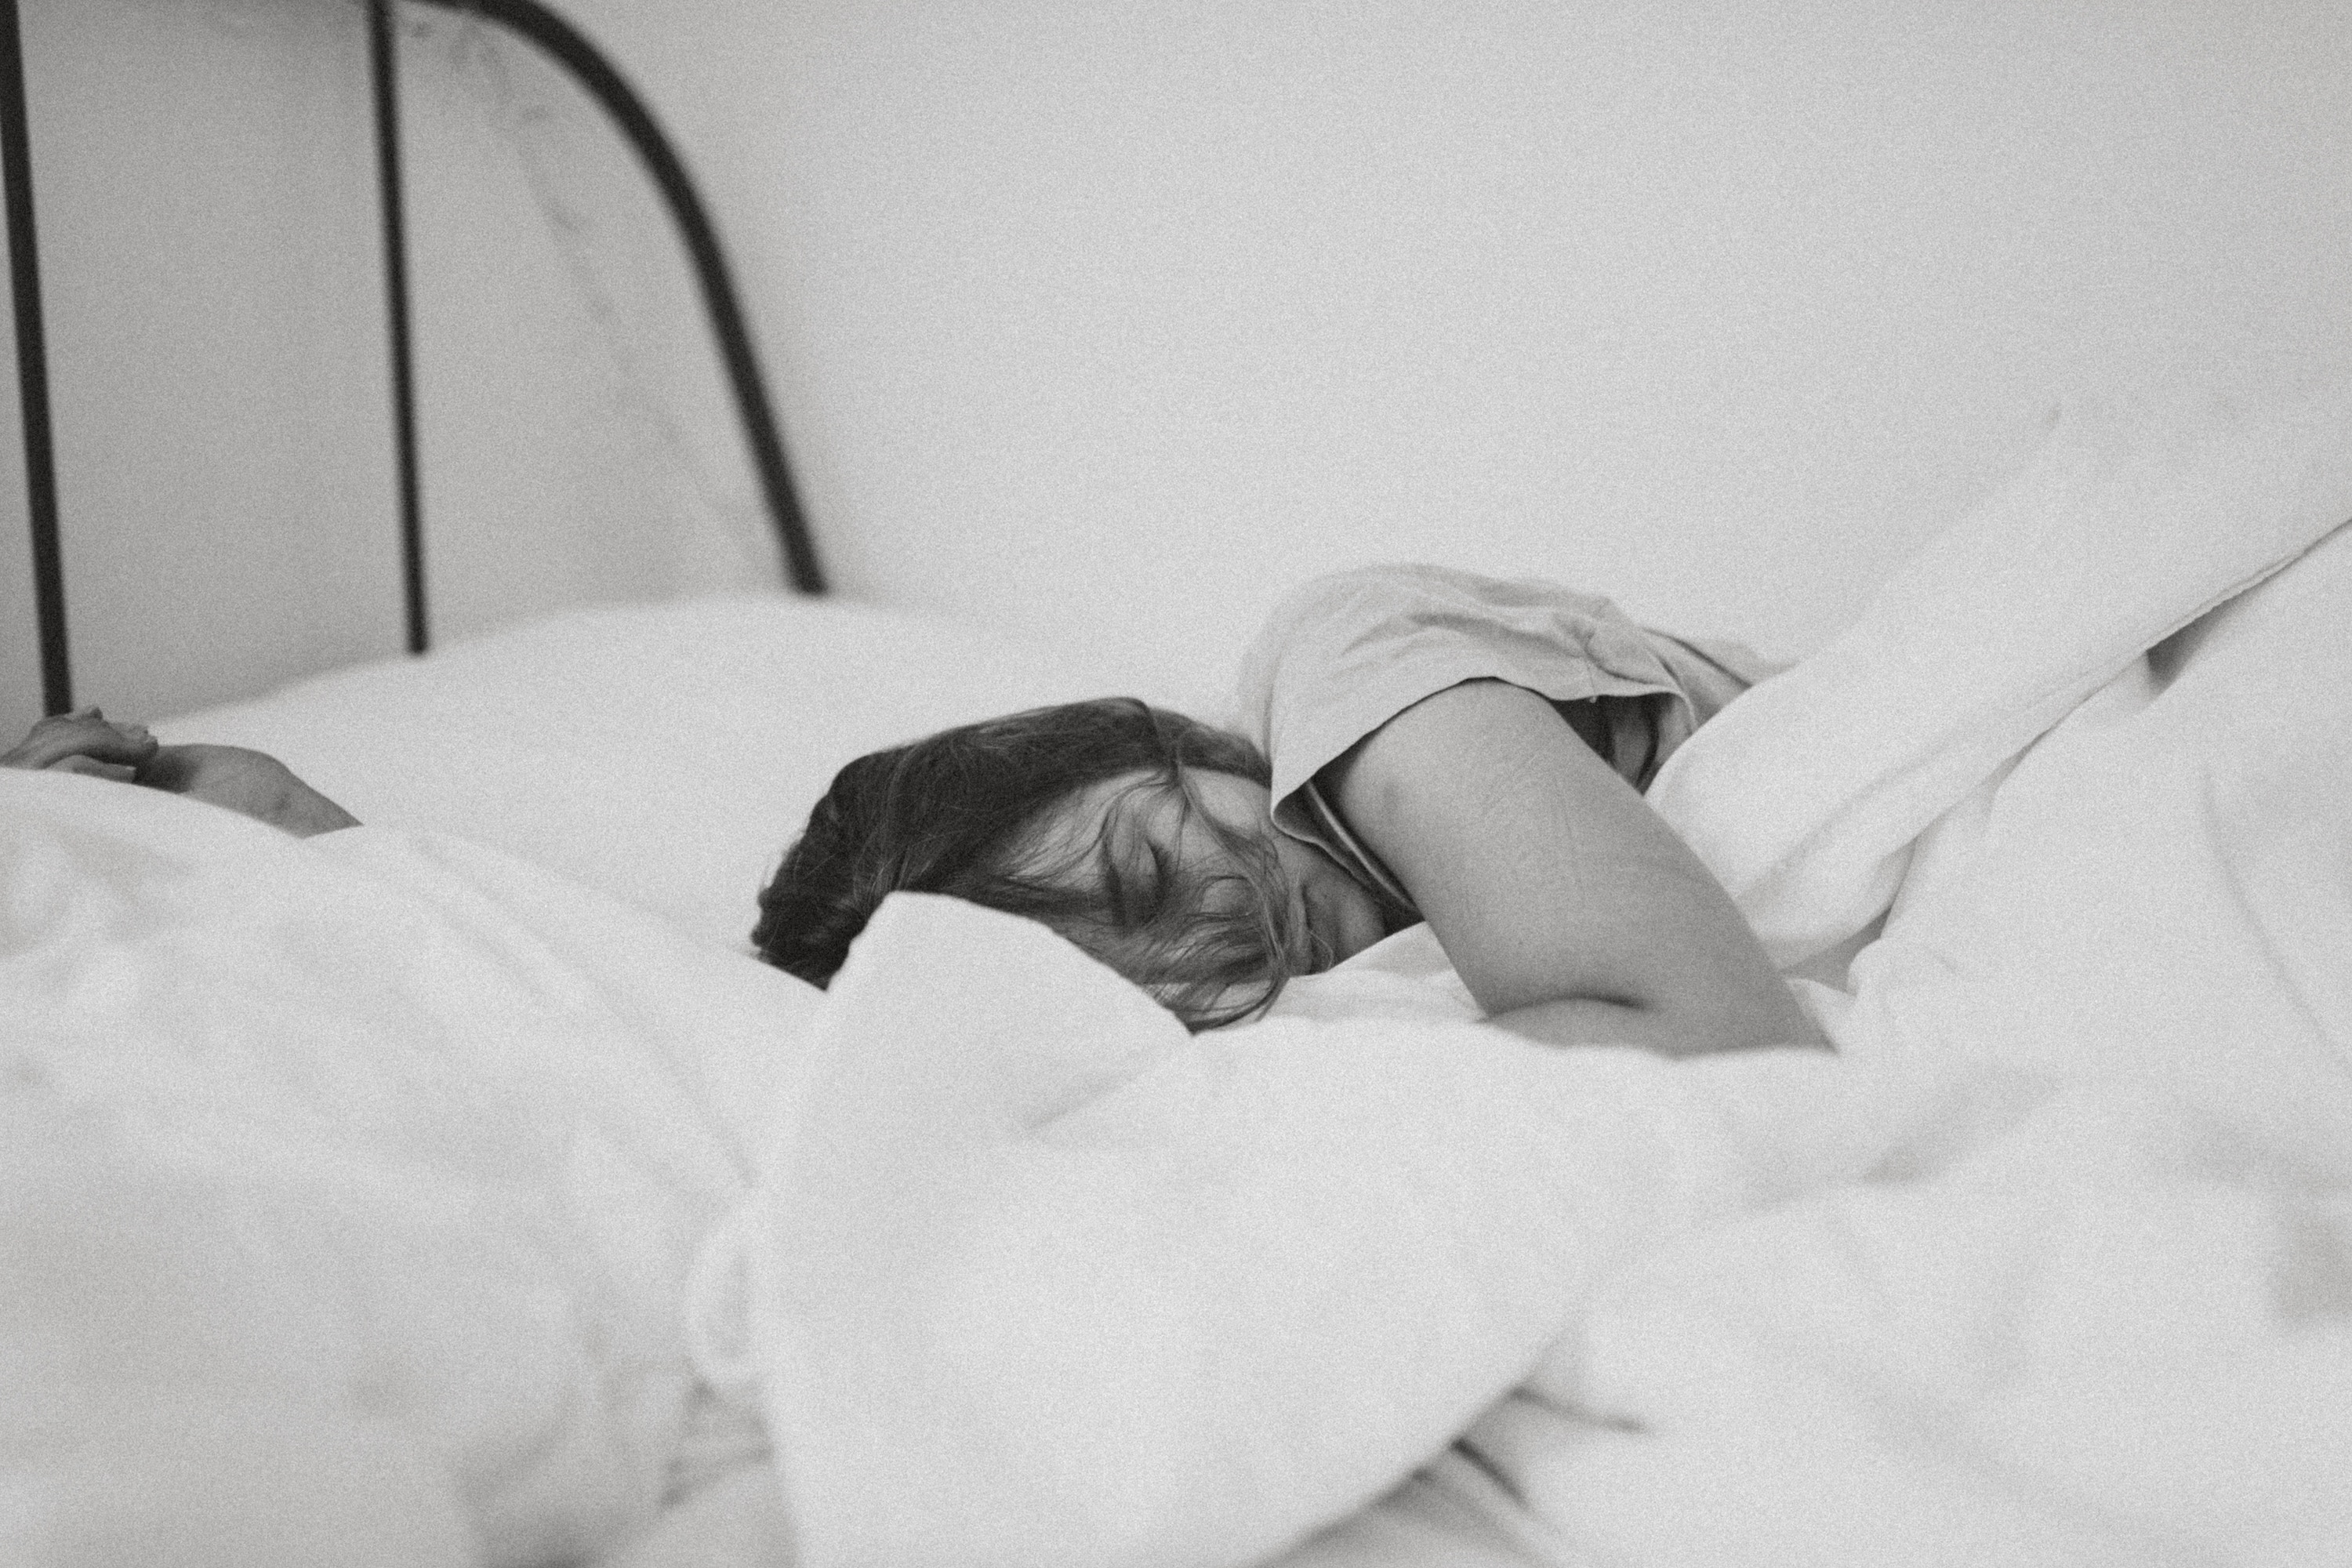 Photo of woman sleeping on a bed.